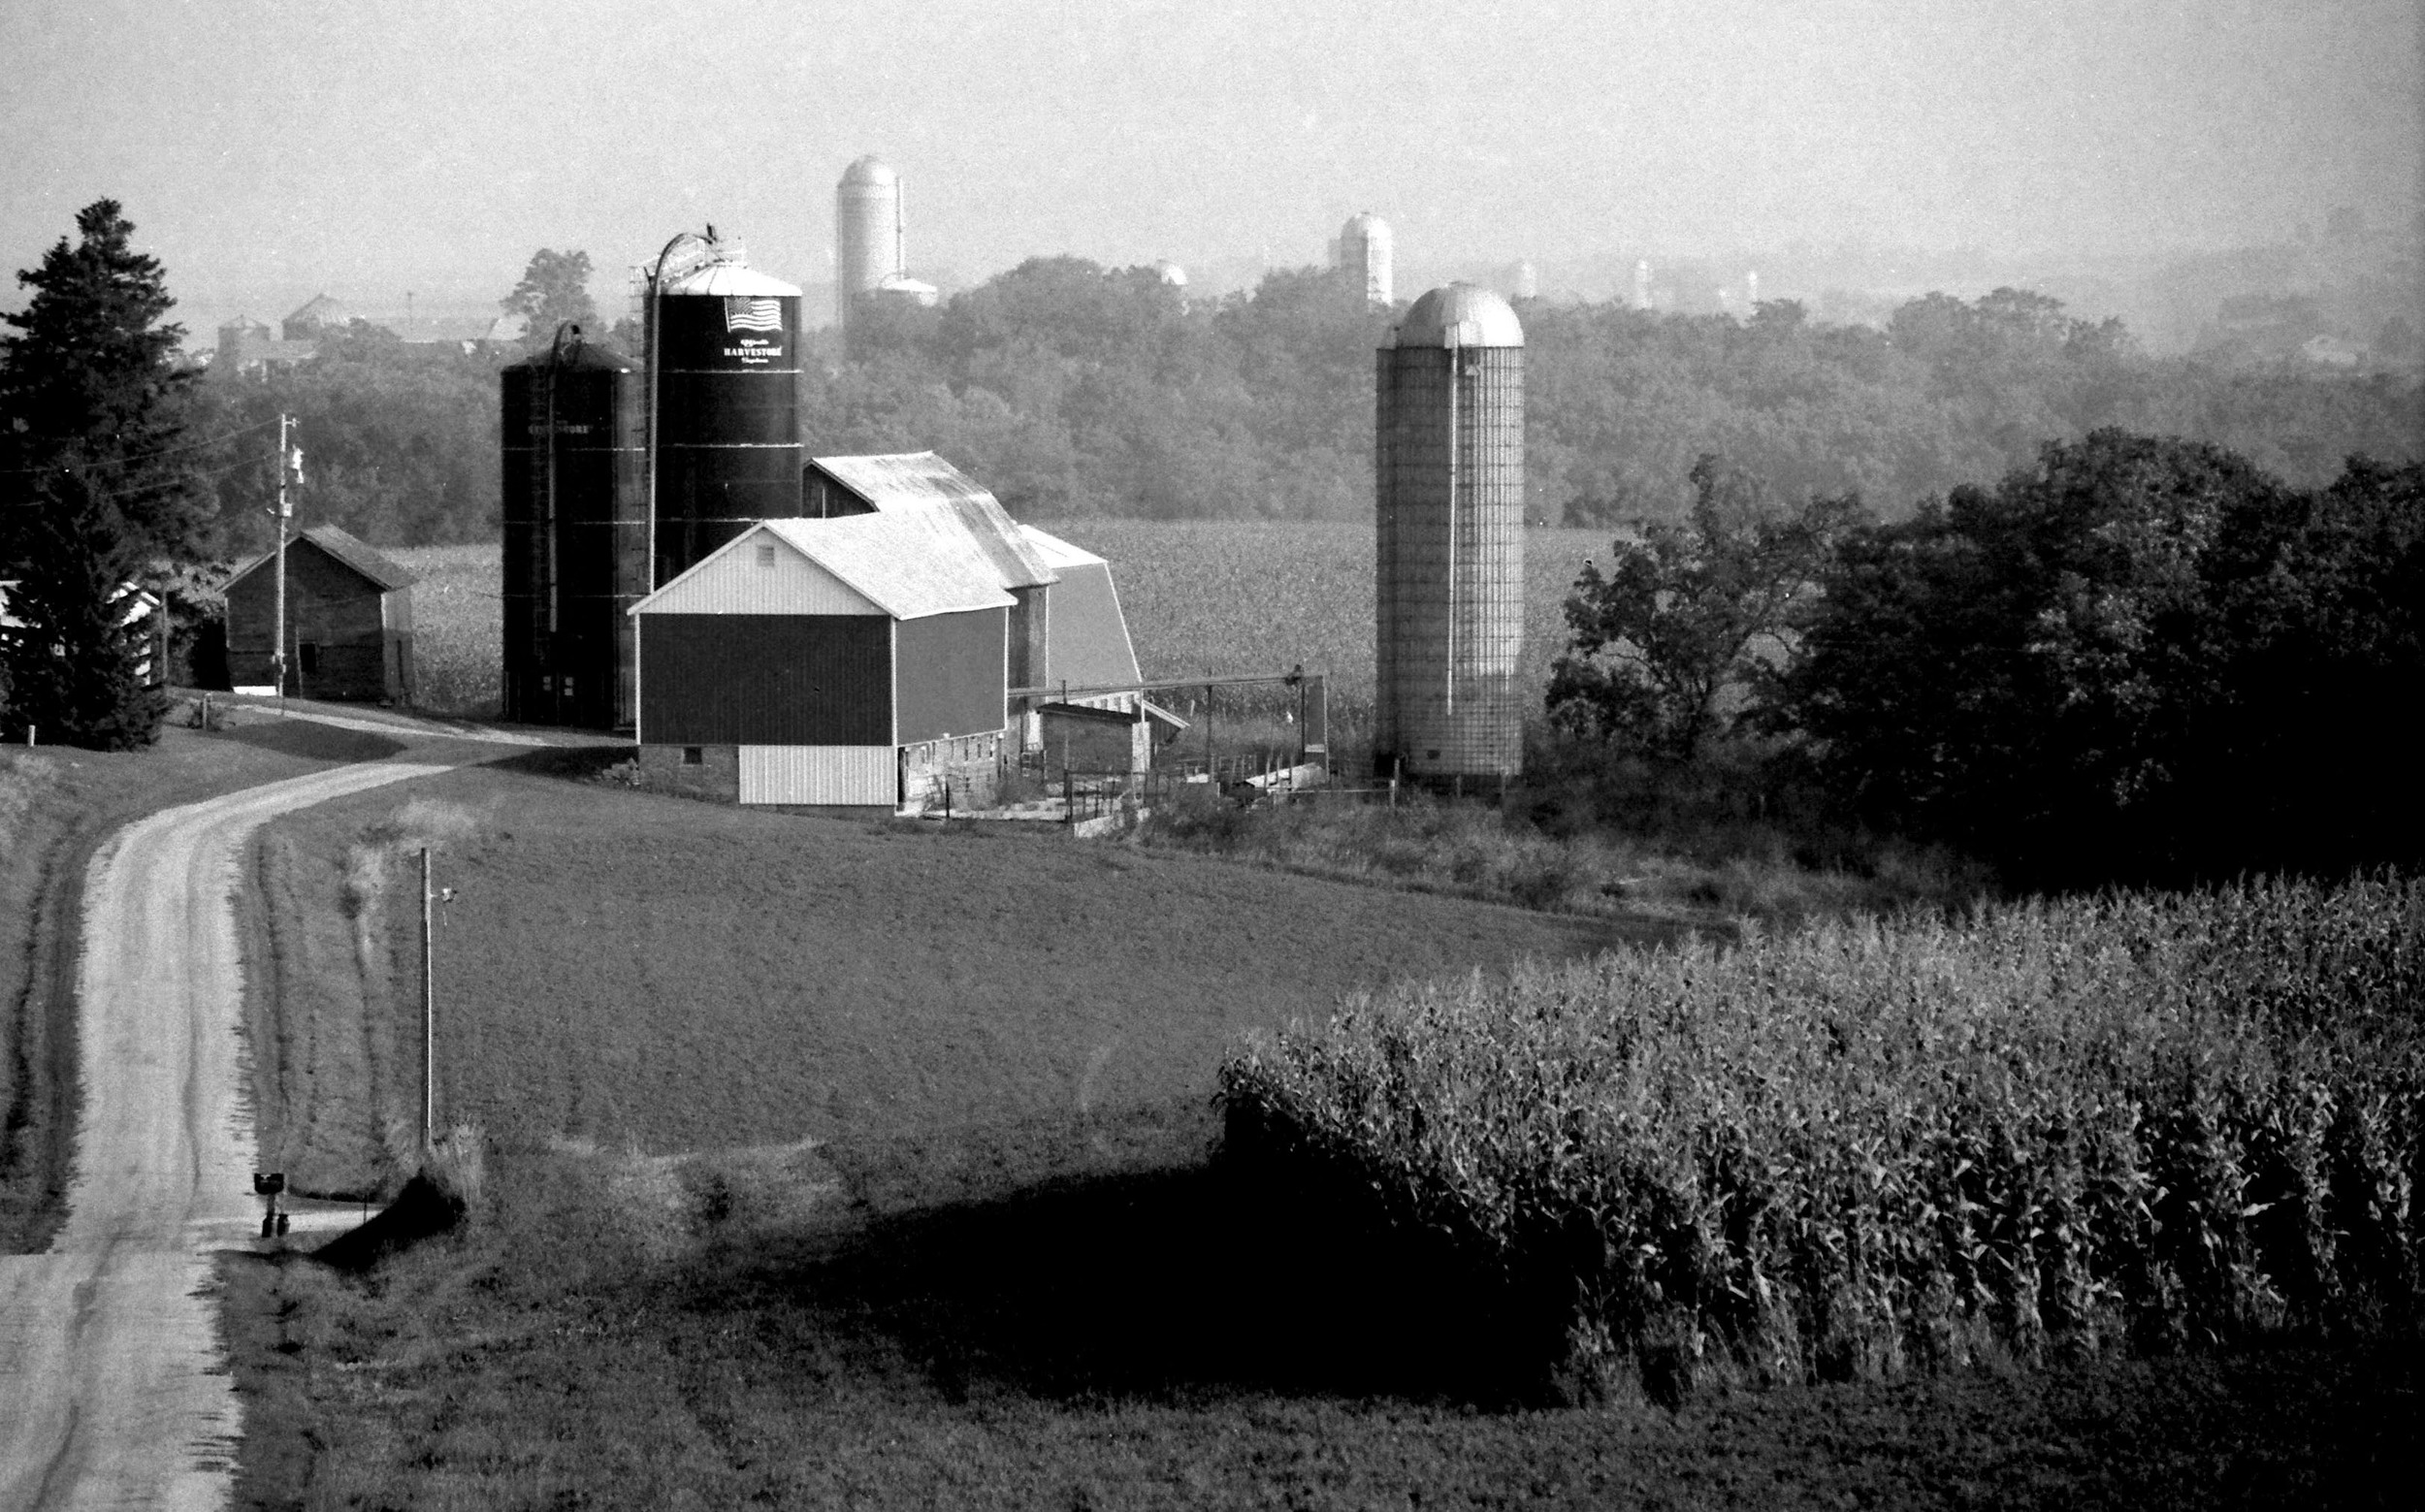 Dane County, Wisconsin, where Ernie was born and lived for many years.